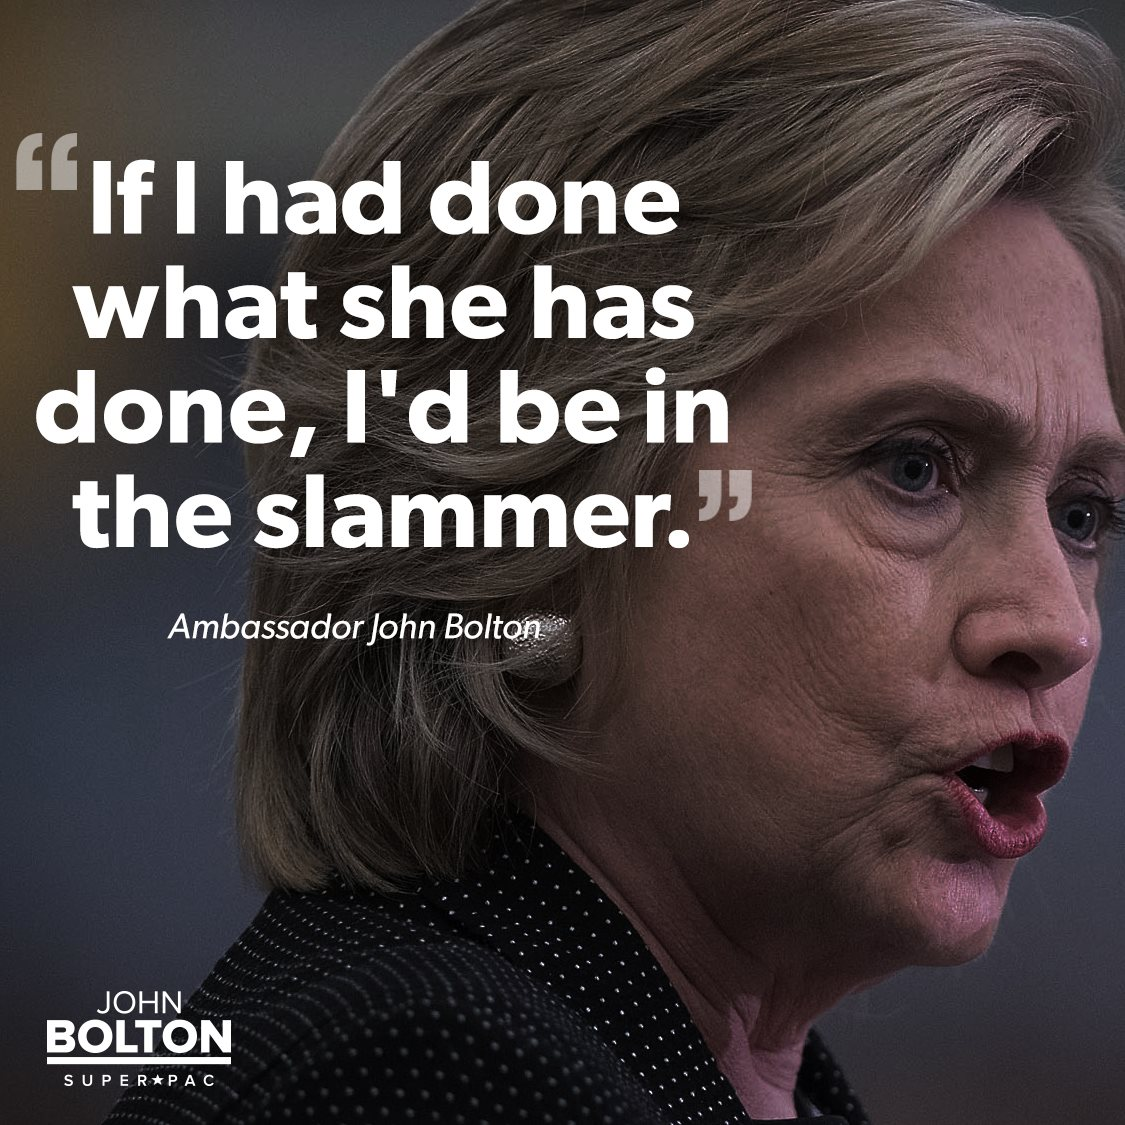 If I had done what @HillaryClinton has done, I'd be in the slammer. #ClintonEmails https://t.co/Yyao6XzTh3